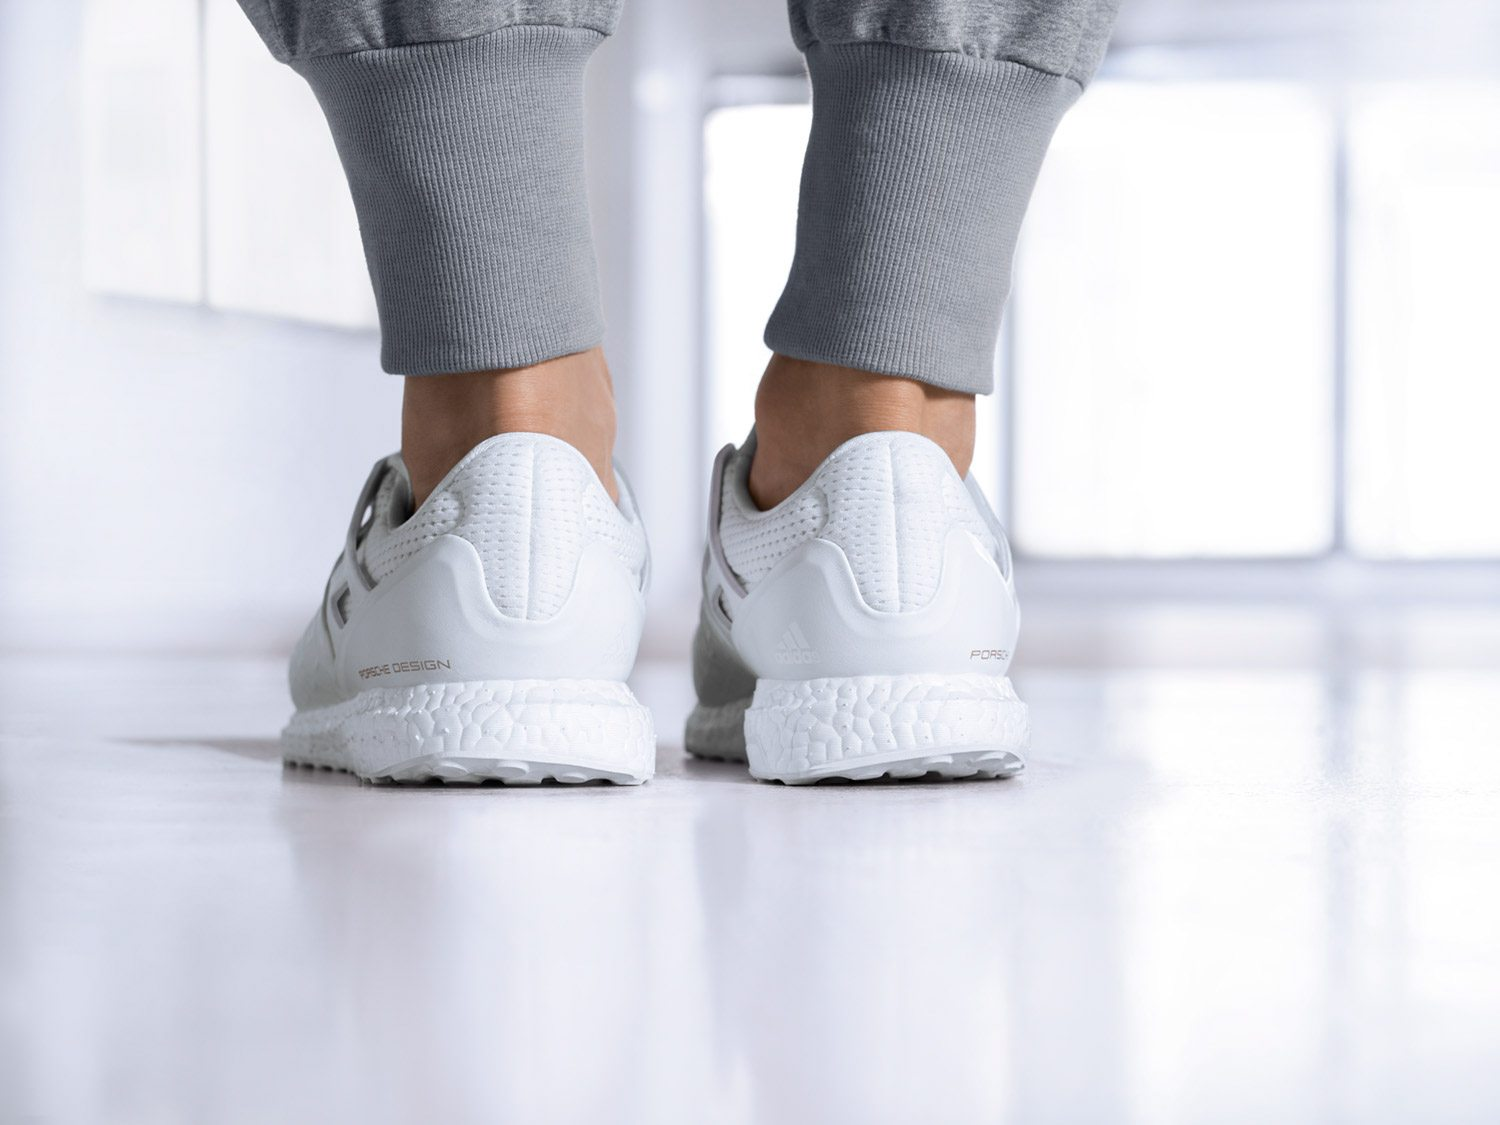 Porsche x adidas Ultra Boost All White 6